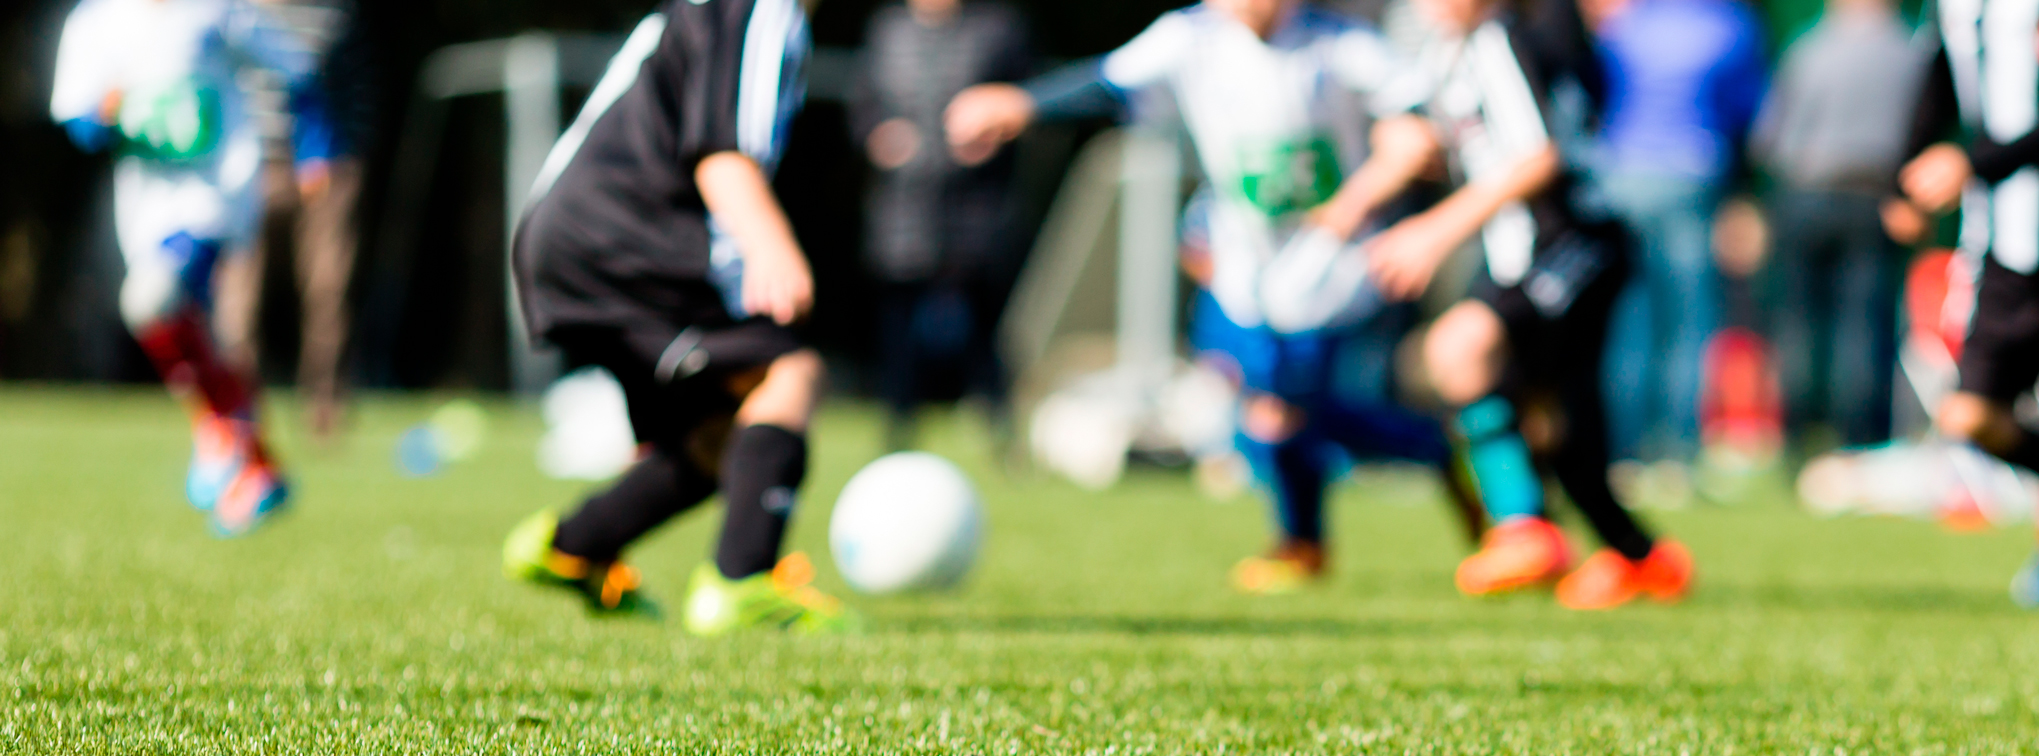 Youth League Soccer